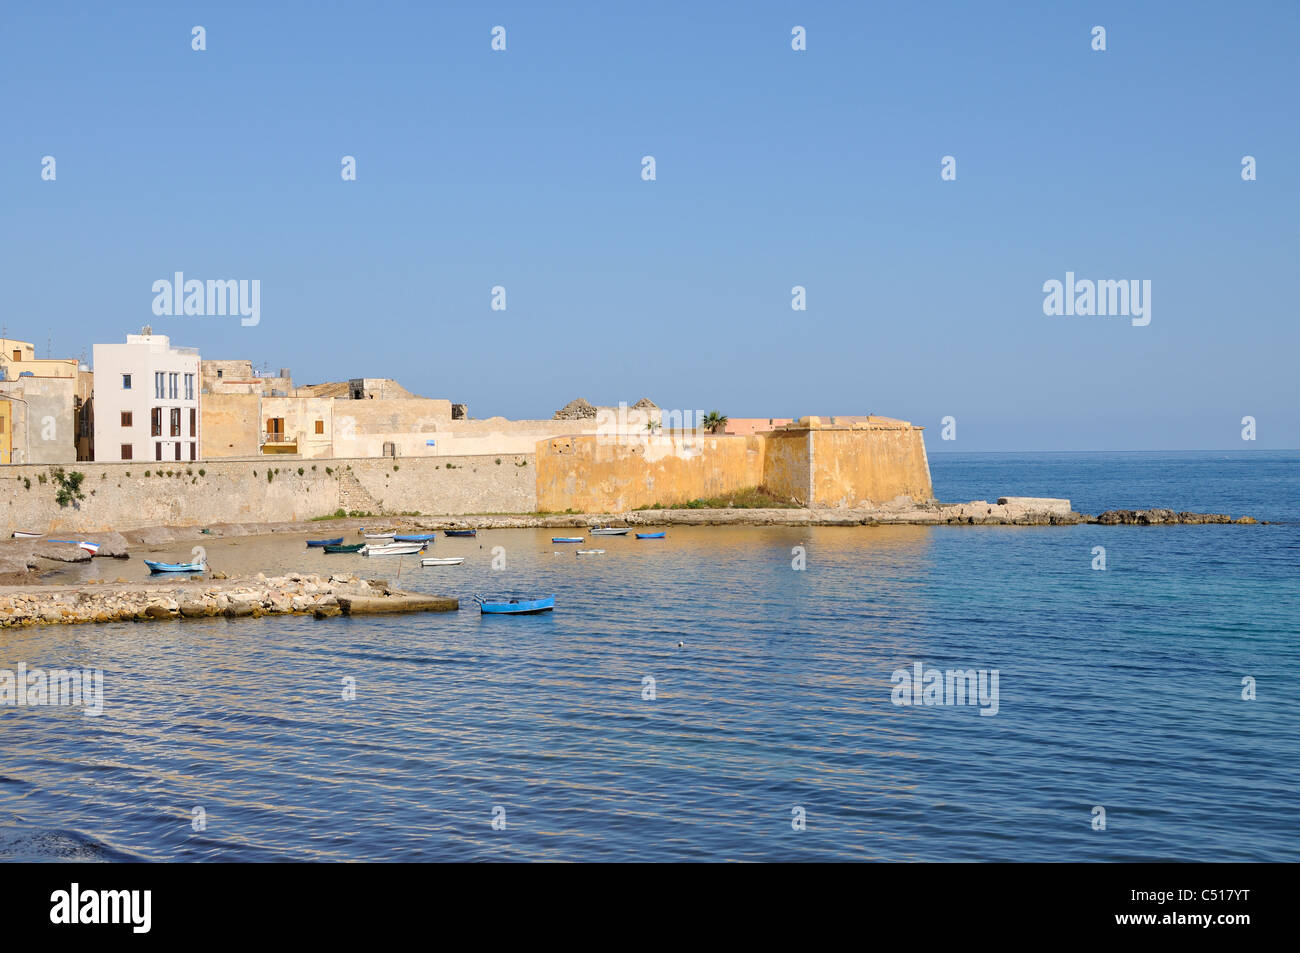 Old Town with Fortification Bastione Conca, Trapani, Sicily, Italy - Stock Image